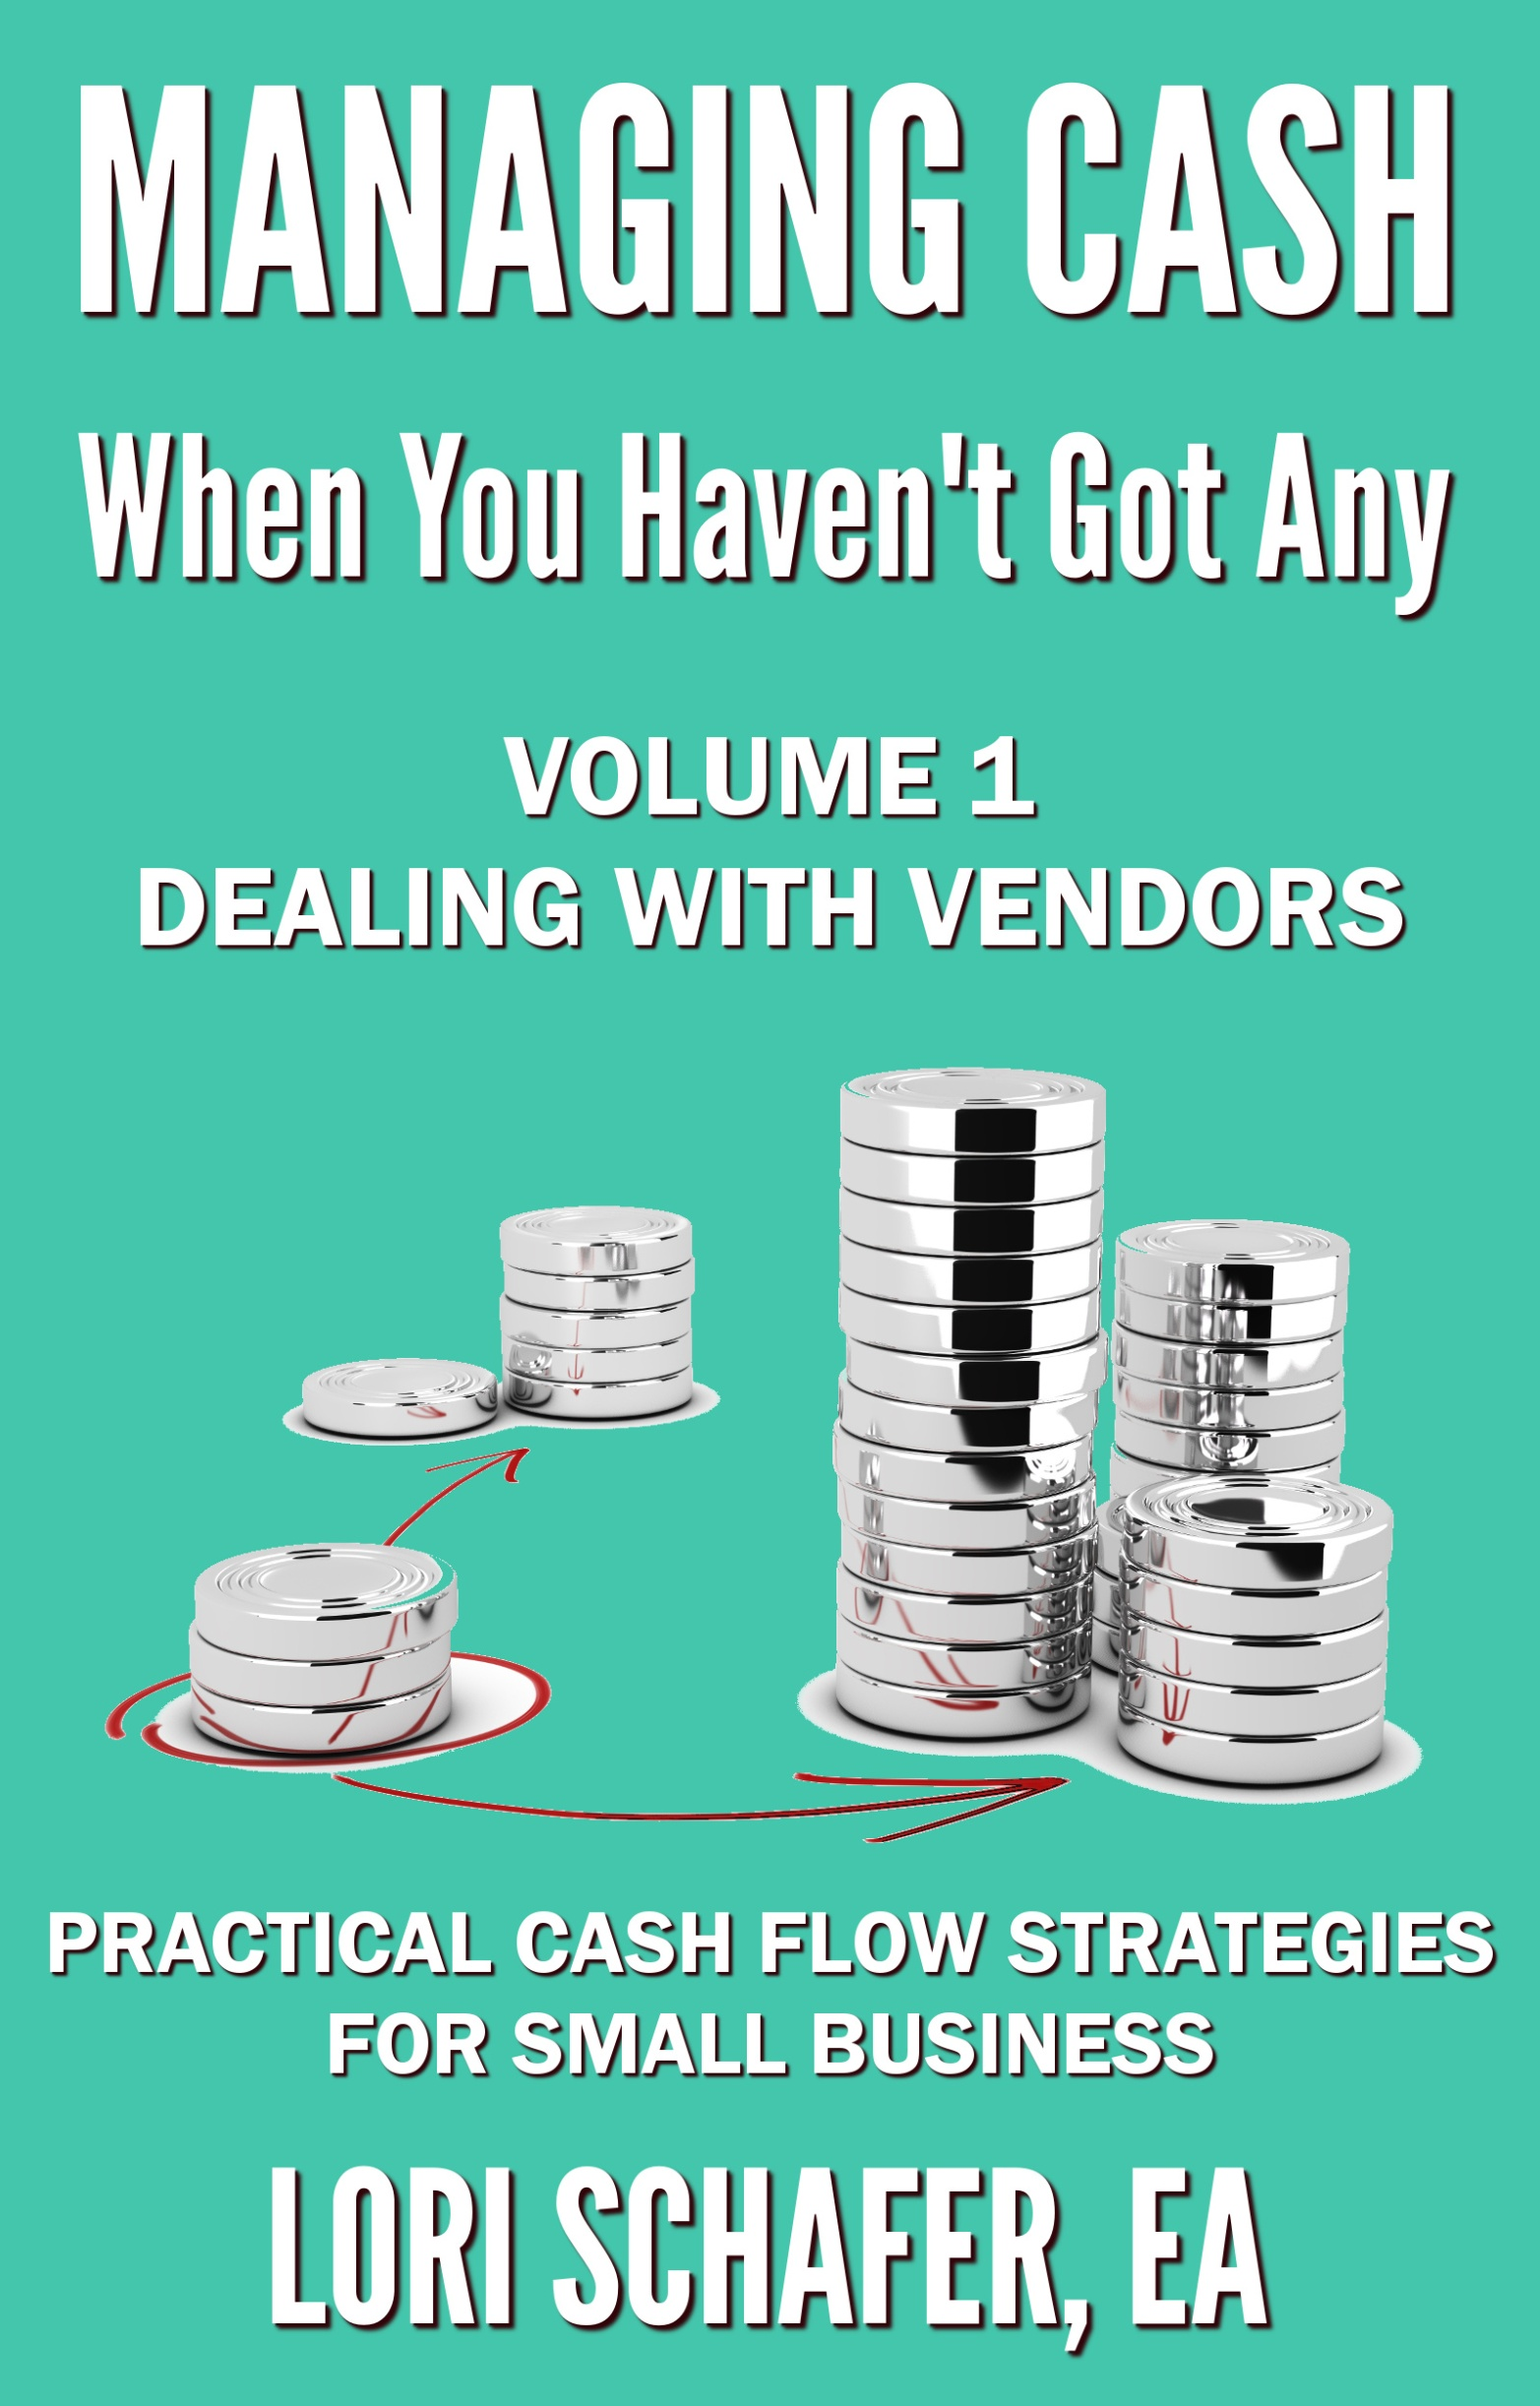 Check Out My Business Book!